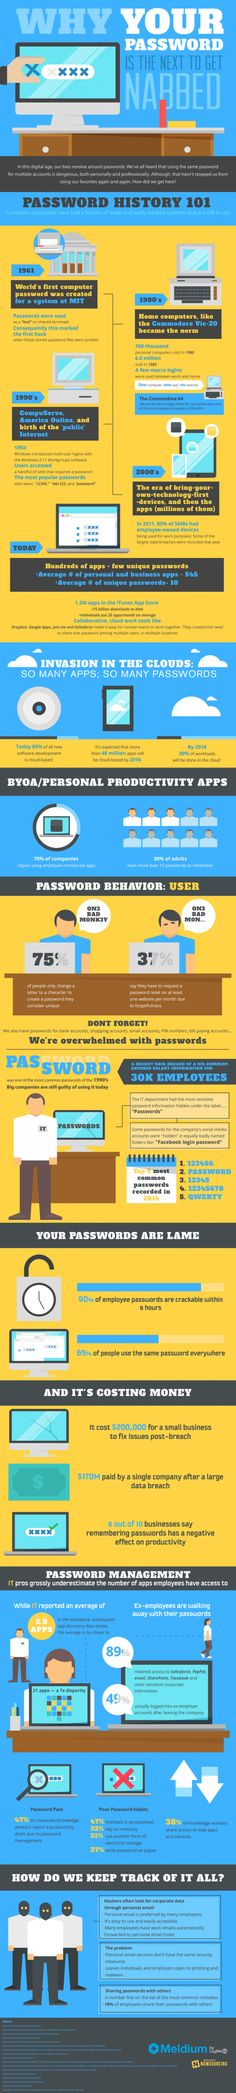 Why your password is...